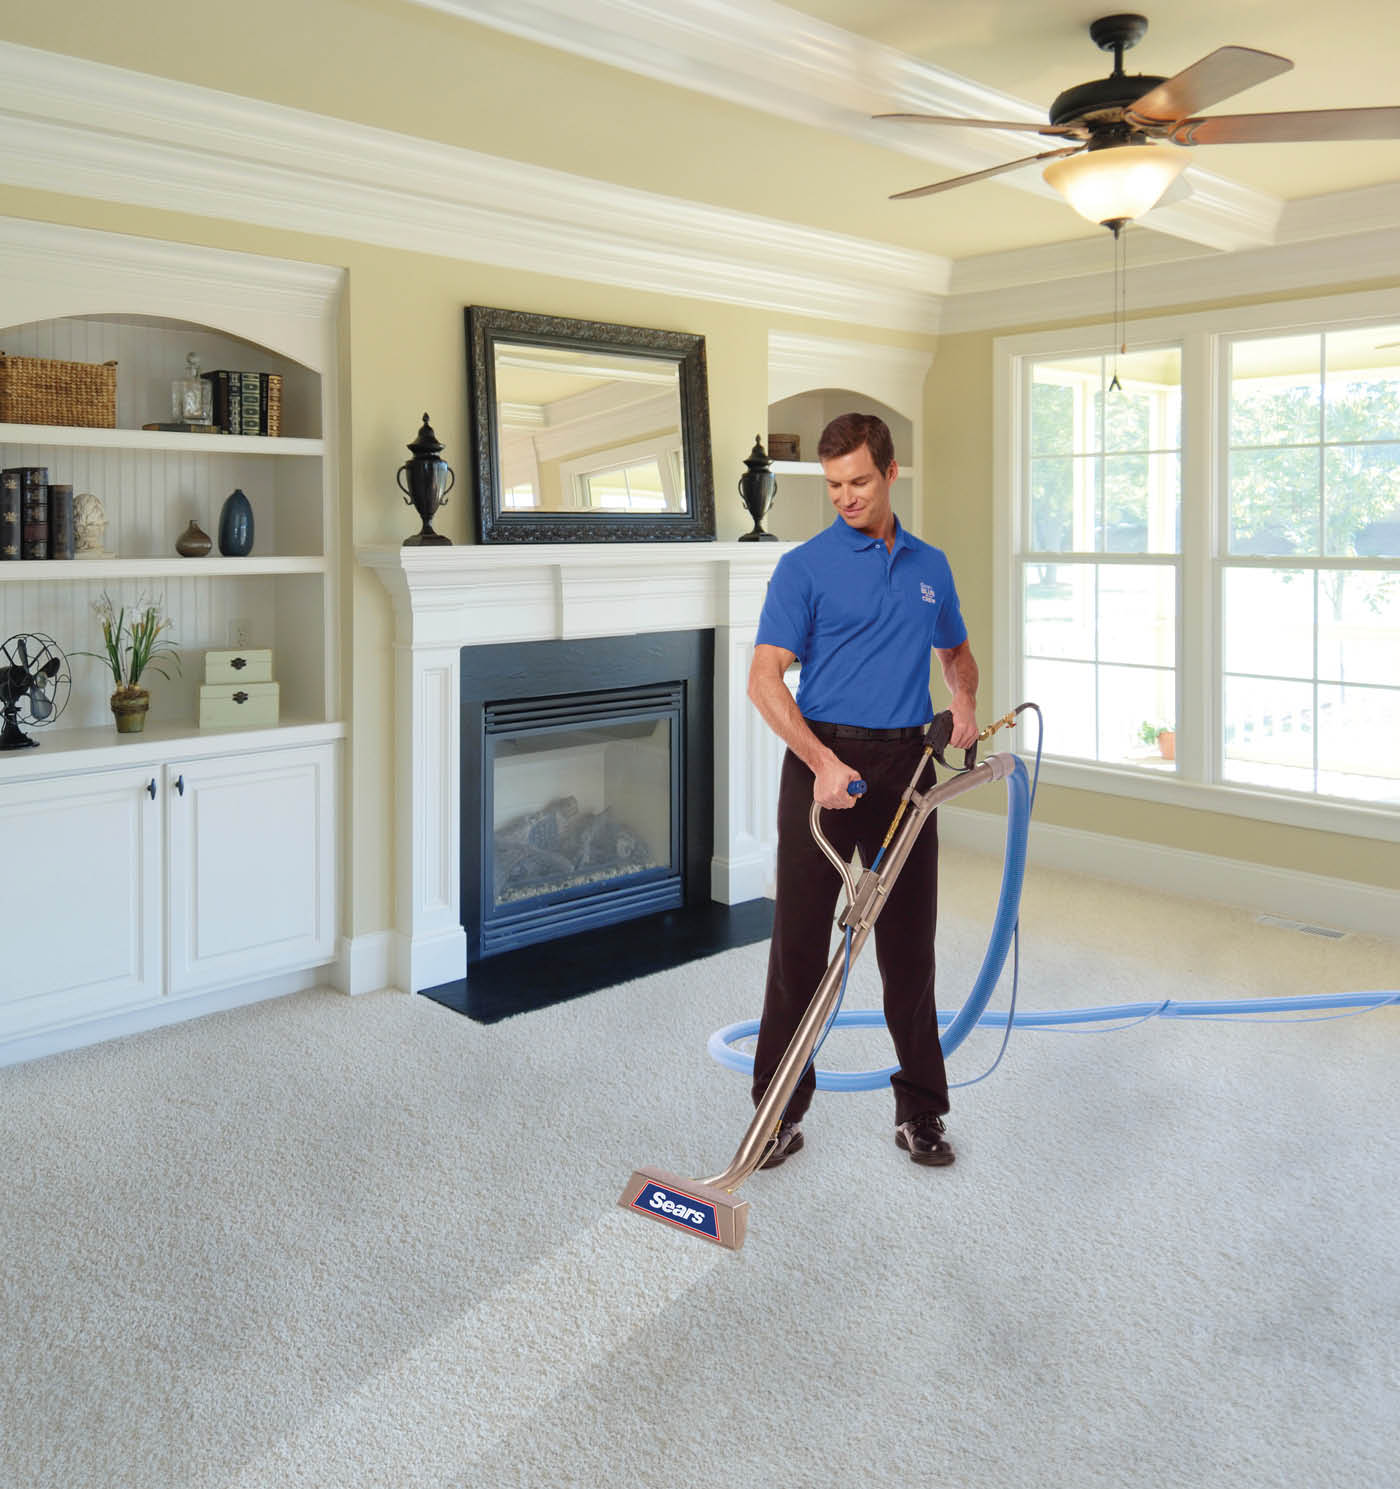 Cleaning Company Professional Carpet Cleaning Company